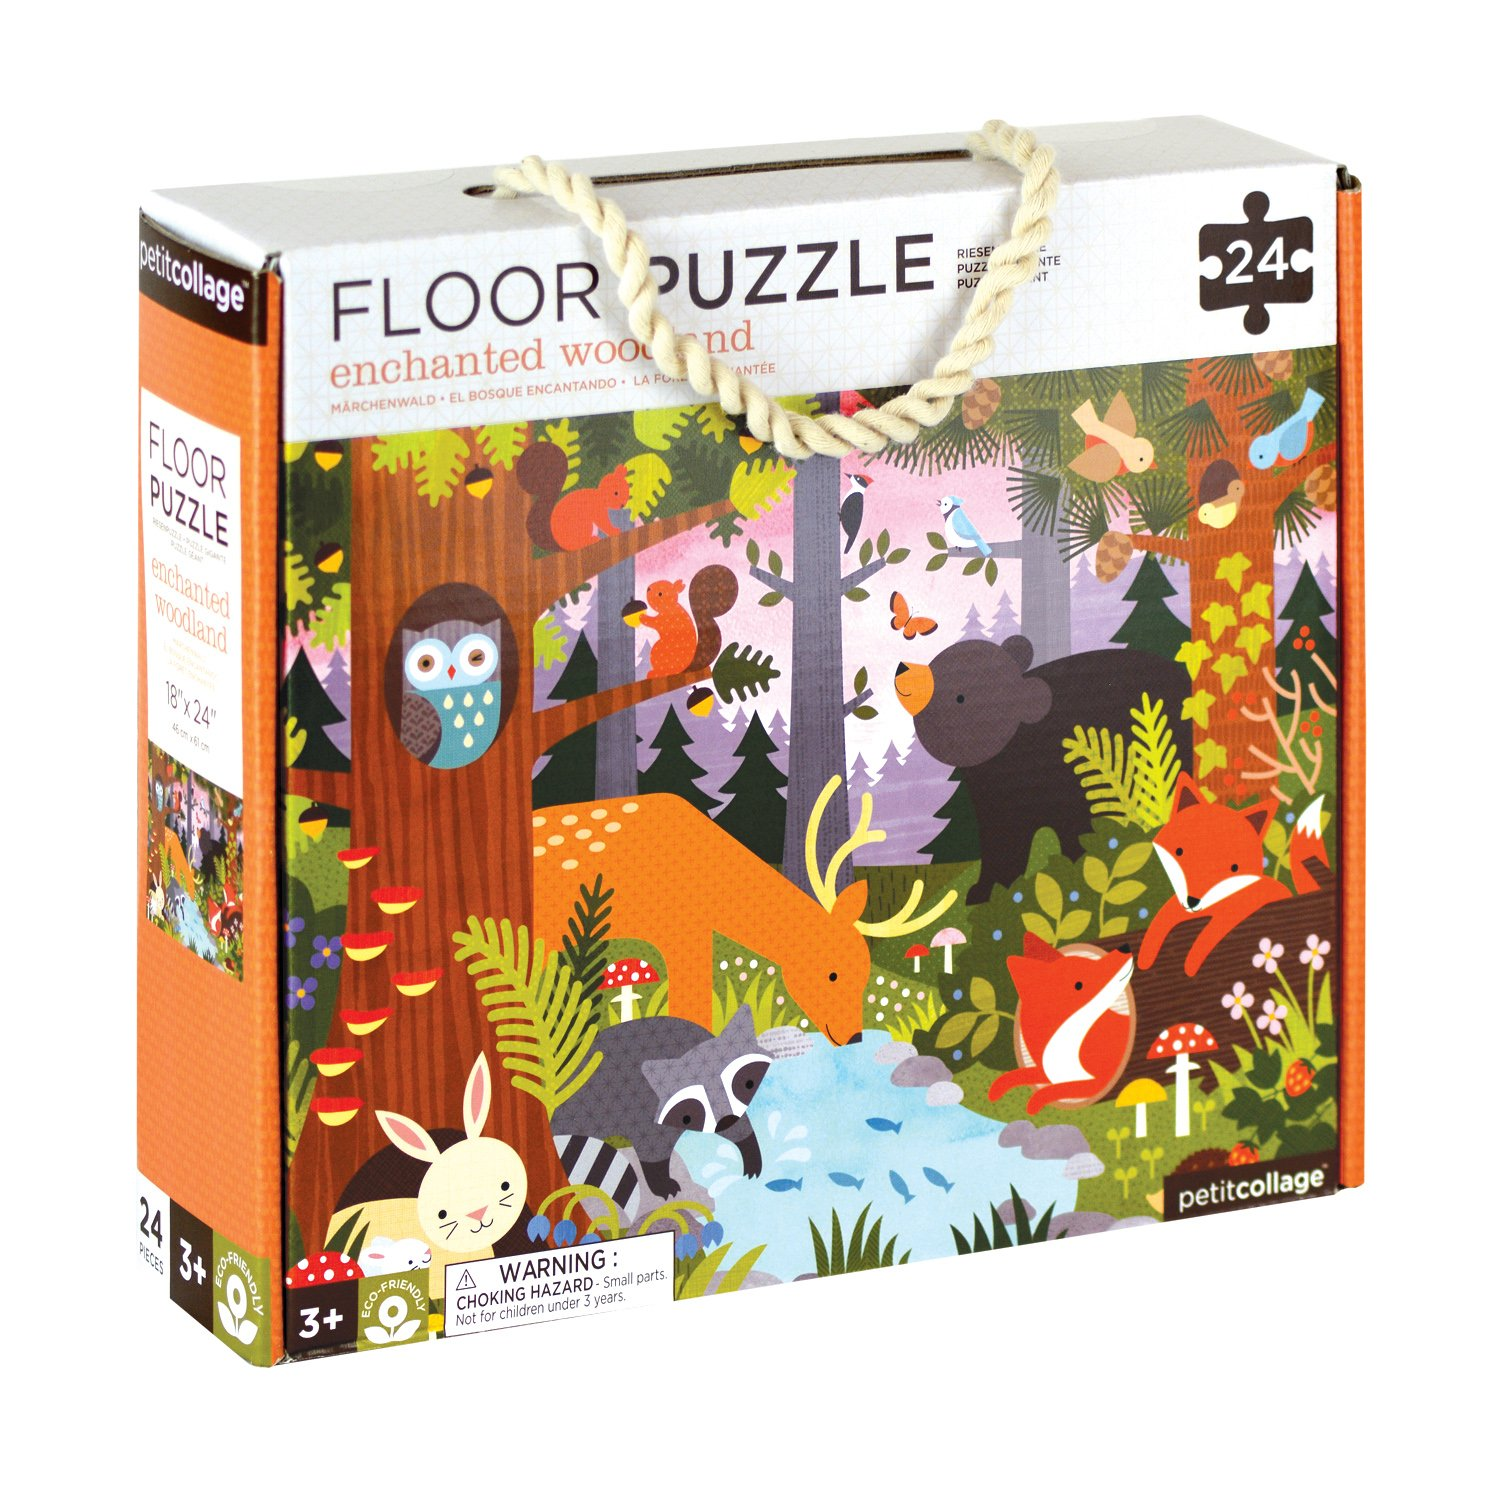 Petit Collage Enchanted Woodland Floor Puzzle, 24 pieces